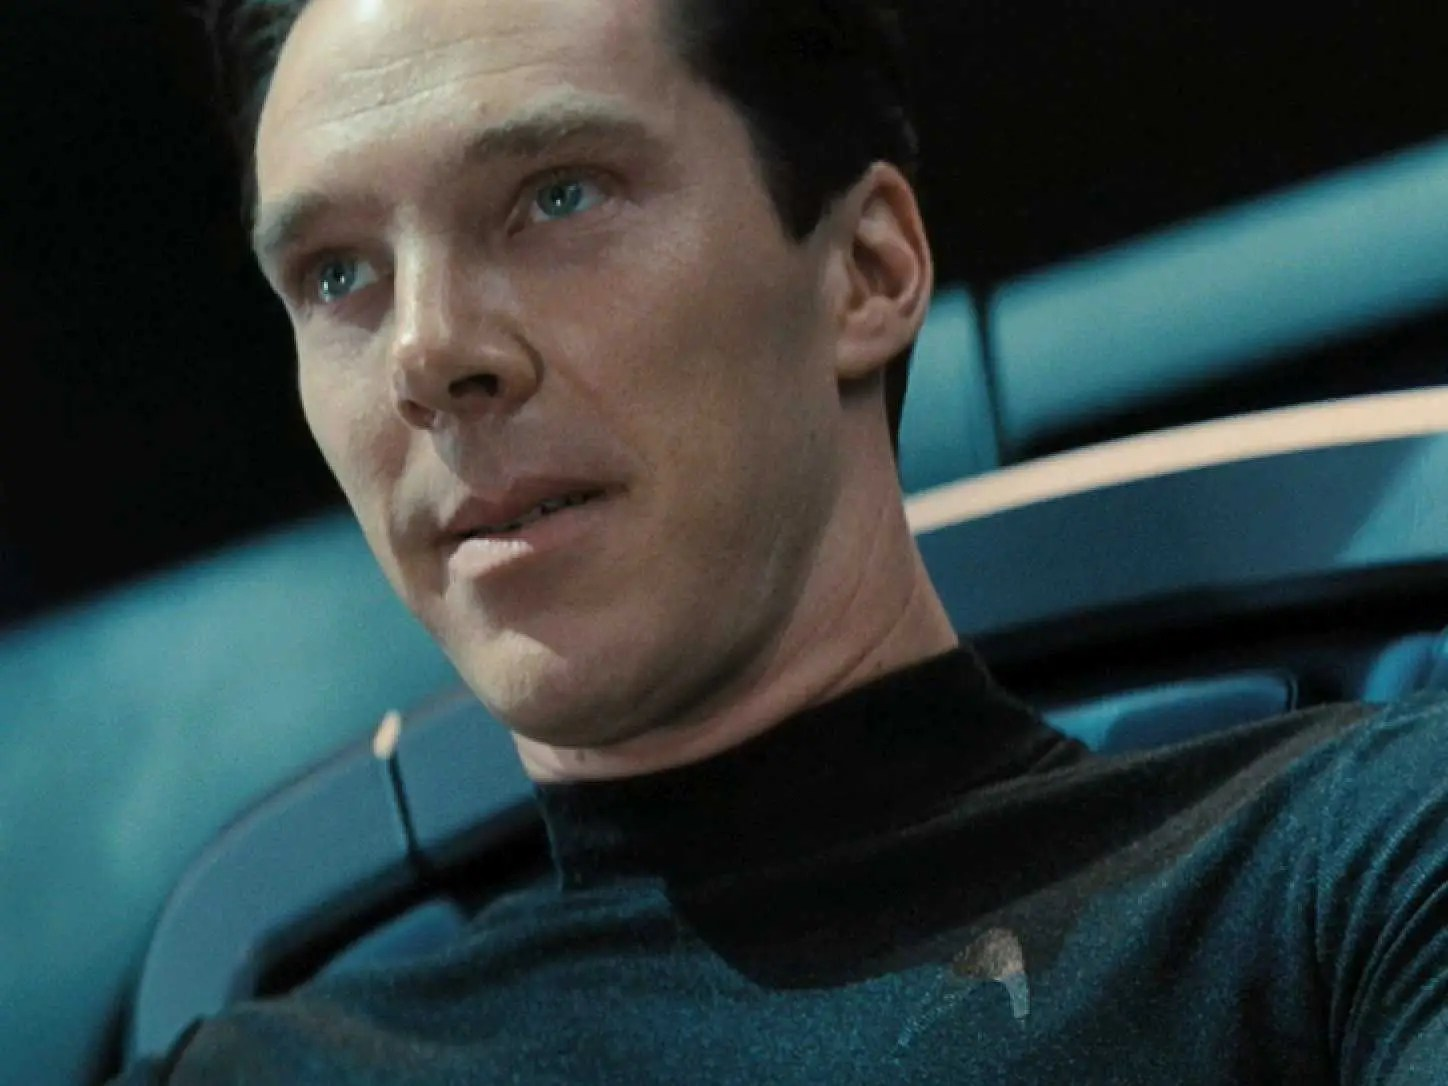 John Harrison (Khan) played by Benedict Cumberbatch in Star Trek Into Darkness